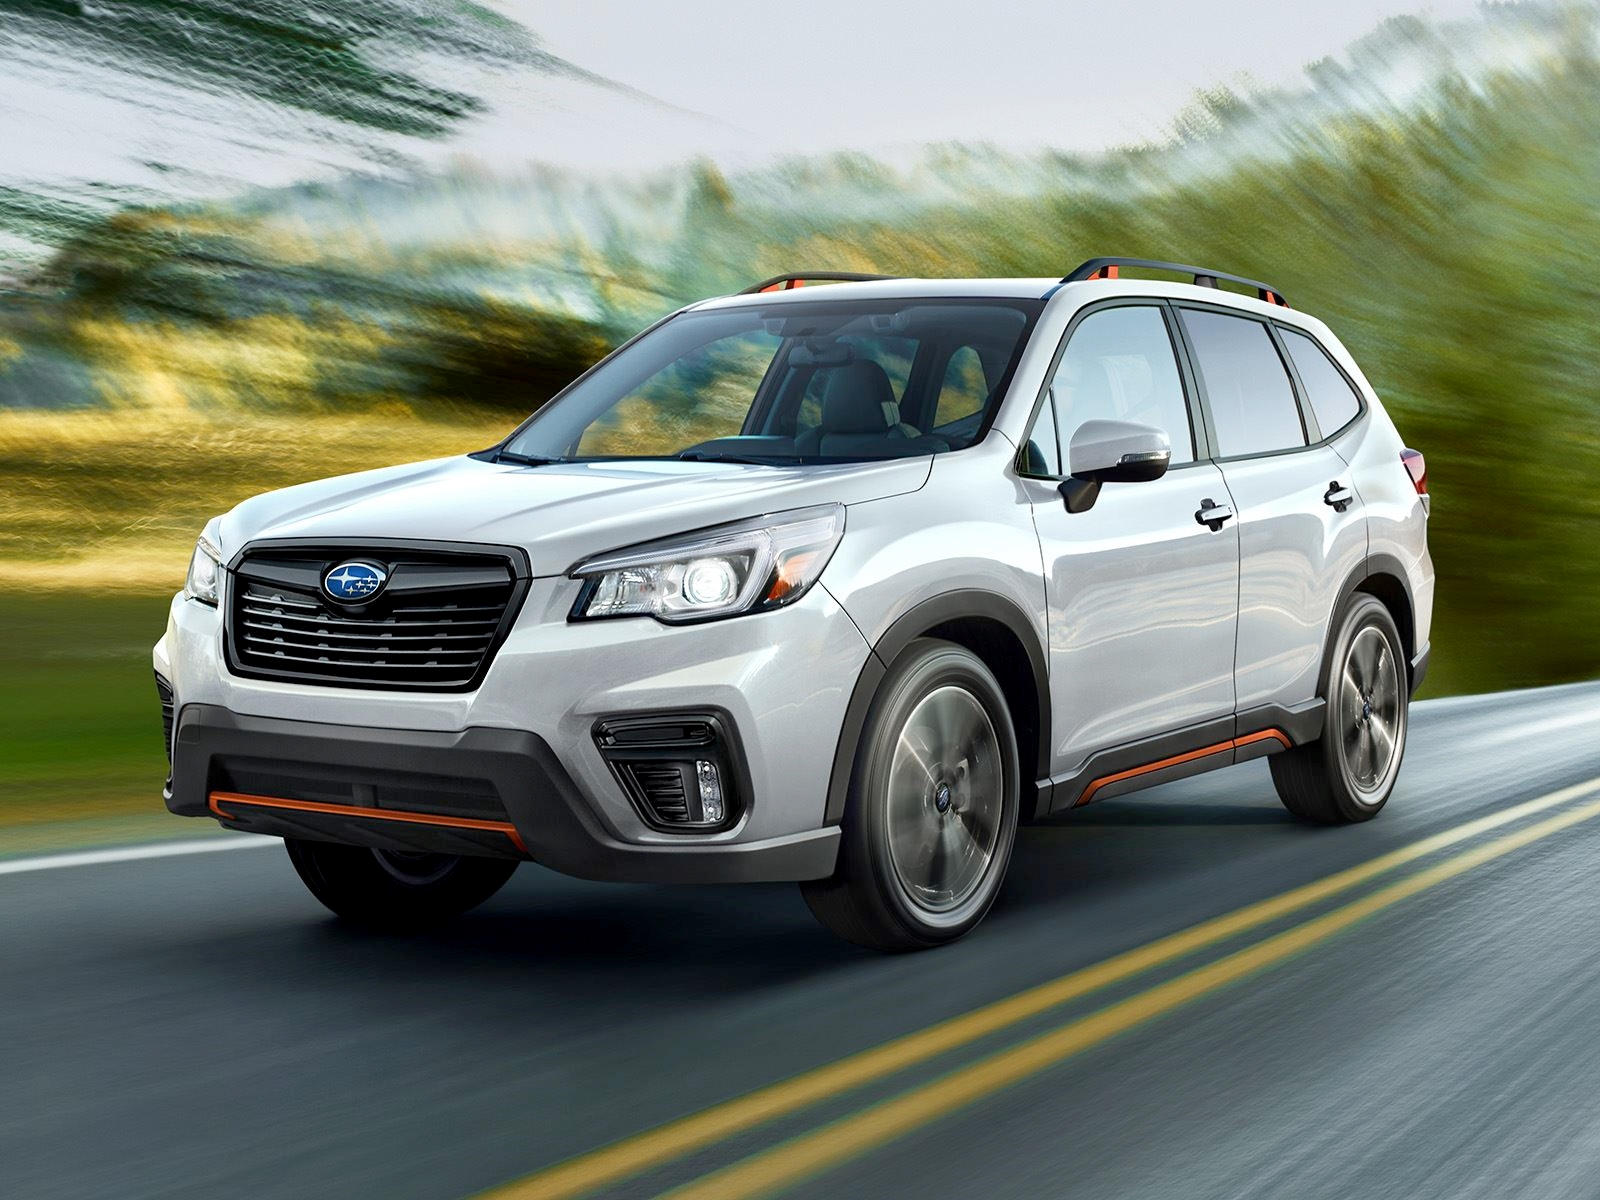 020 Subaru Forester Crossover Front view